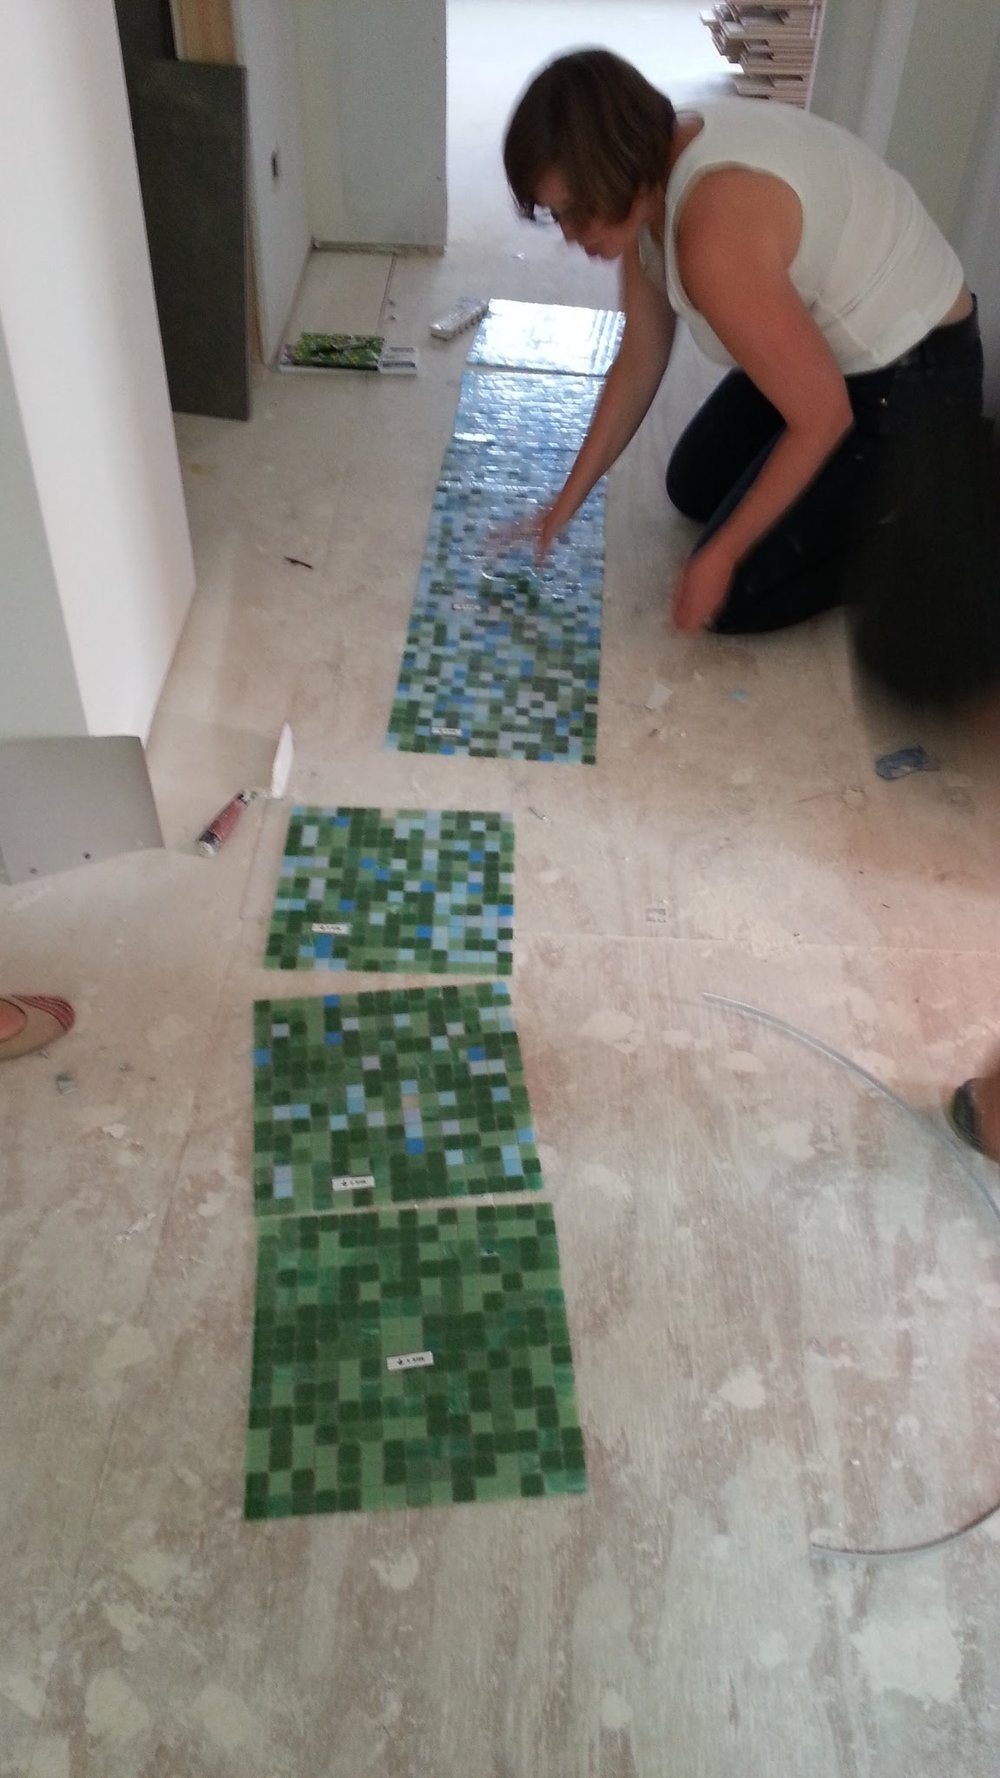 Claudia laying out the hall bathroom wall tile pattern.